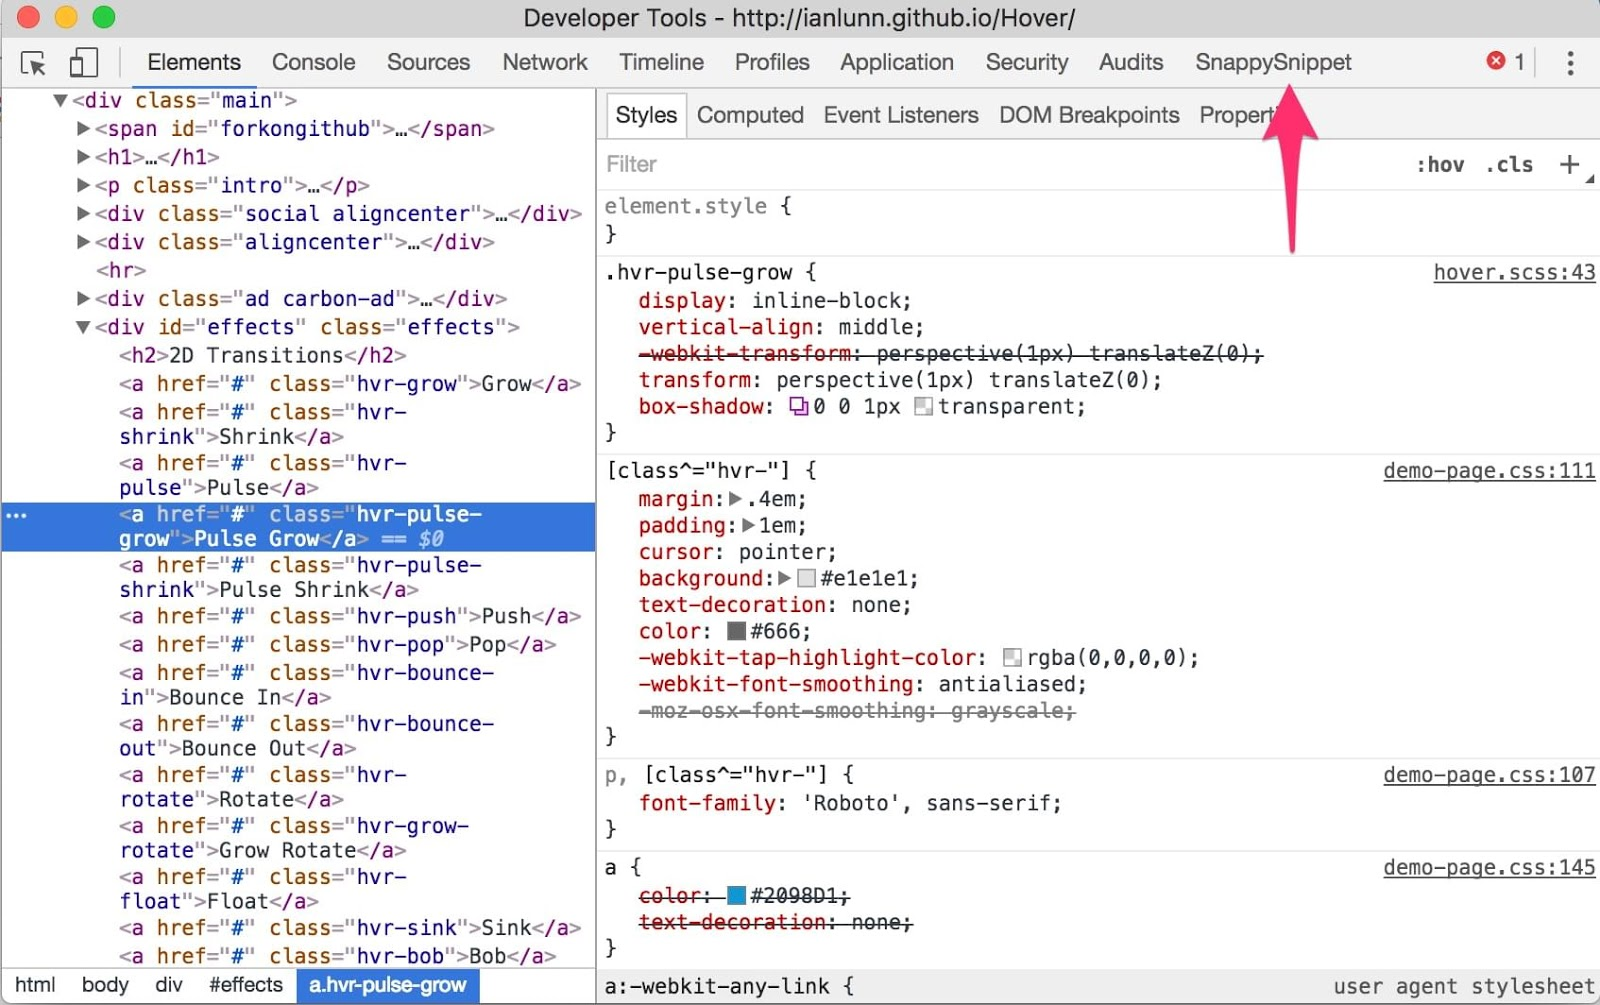 Chrome Devtools - Snappy Snippet